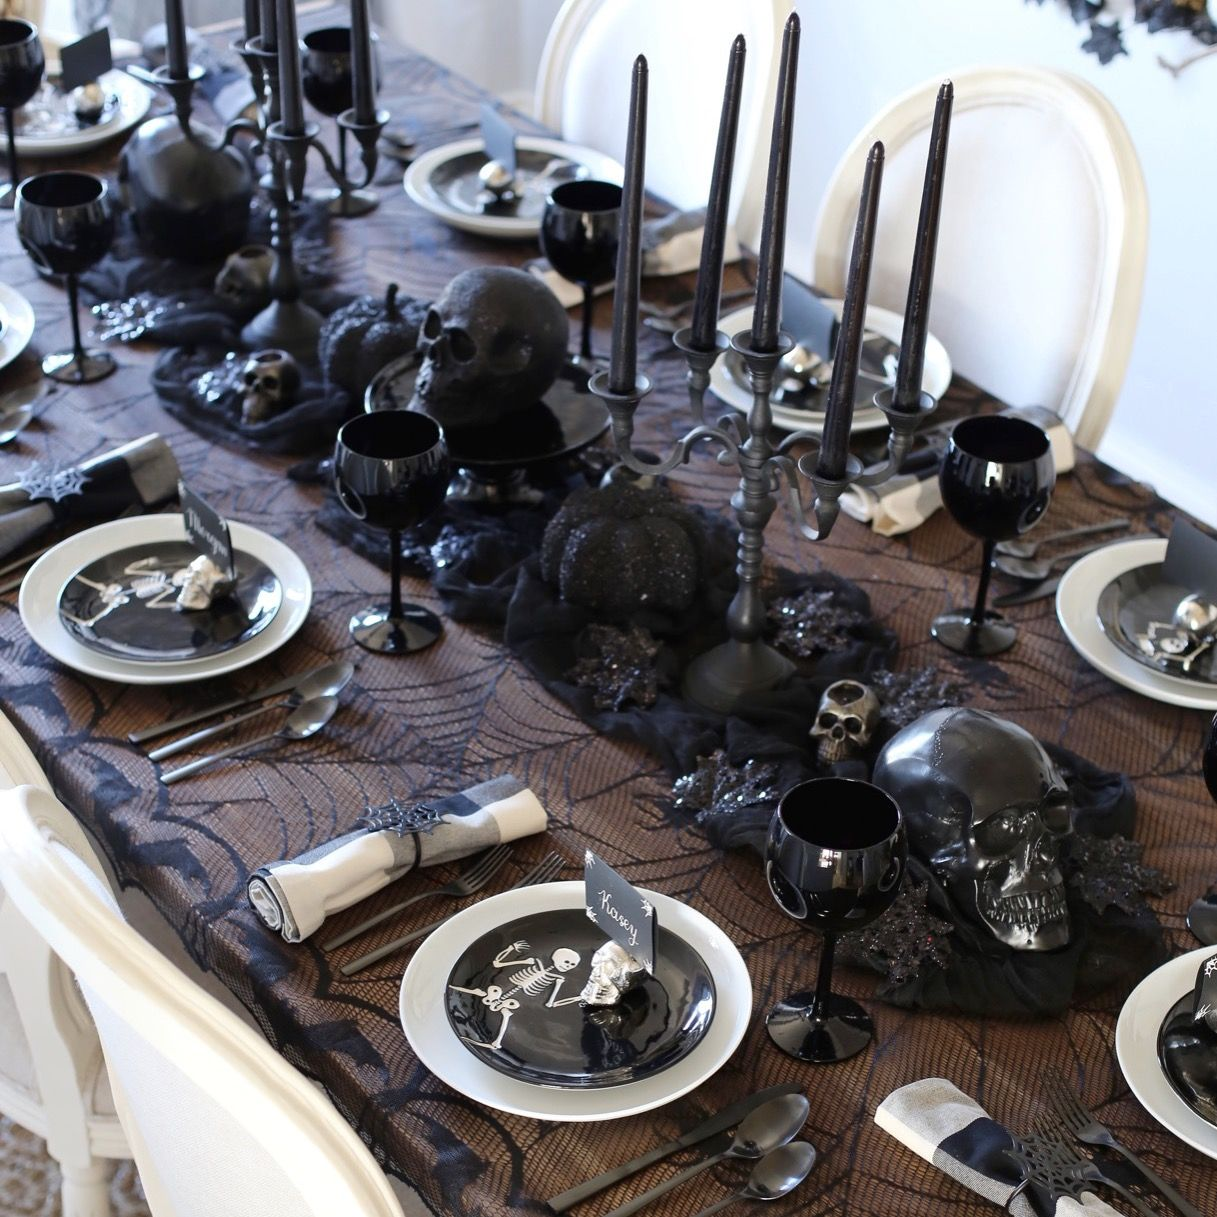 Halloween Decorations Dinner Party Table Setting Tablescape Halloween Party Dinner Halloween Tablescape Halloween Table